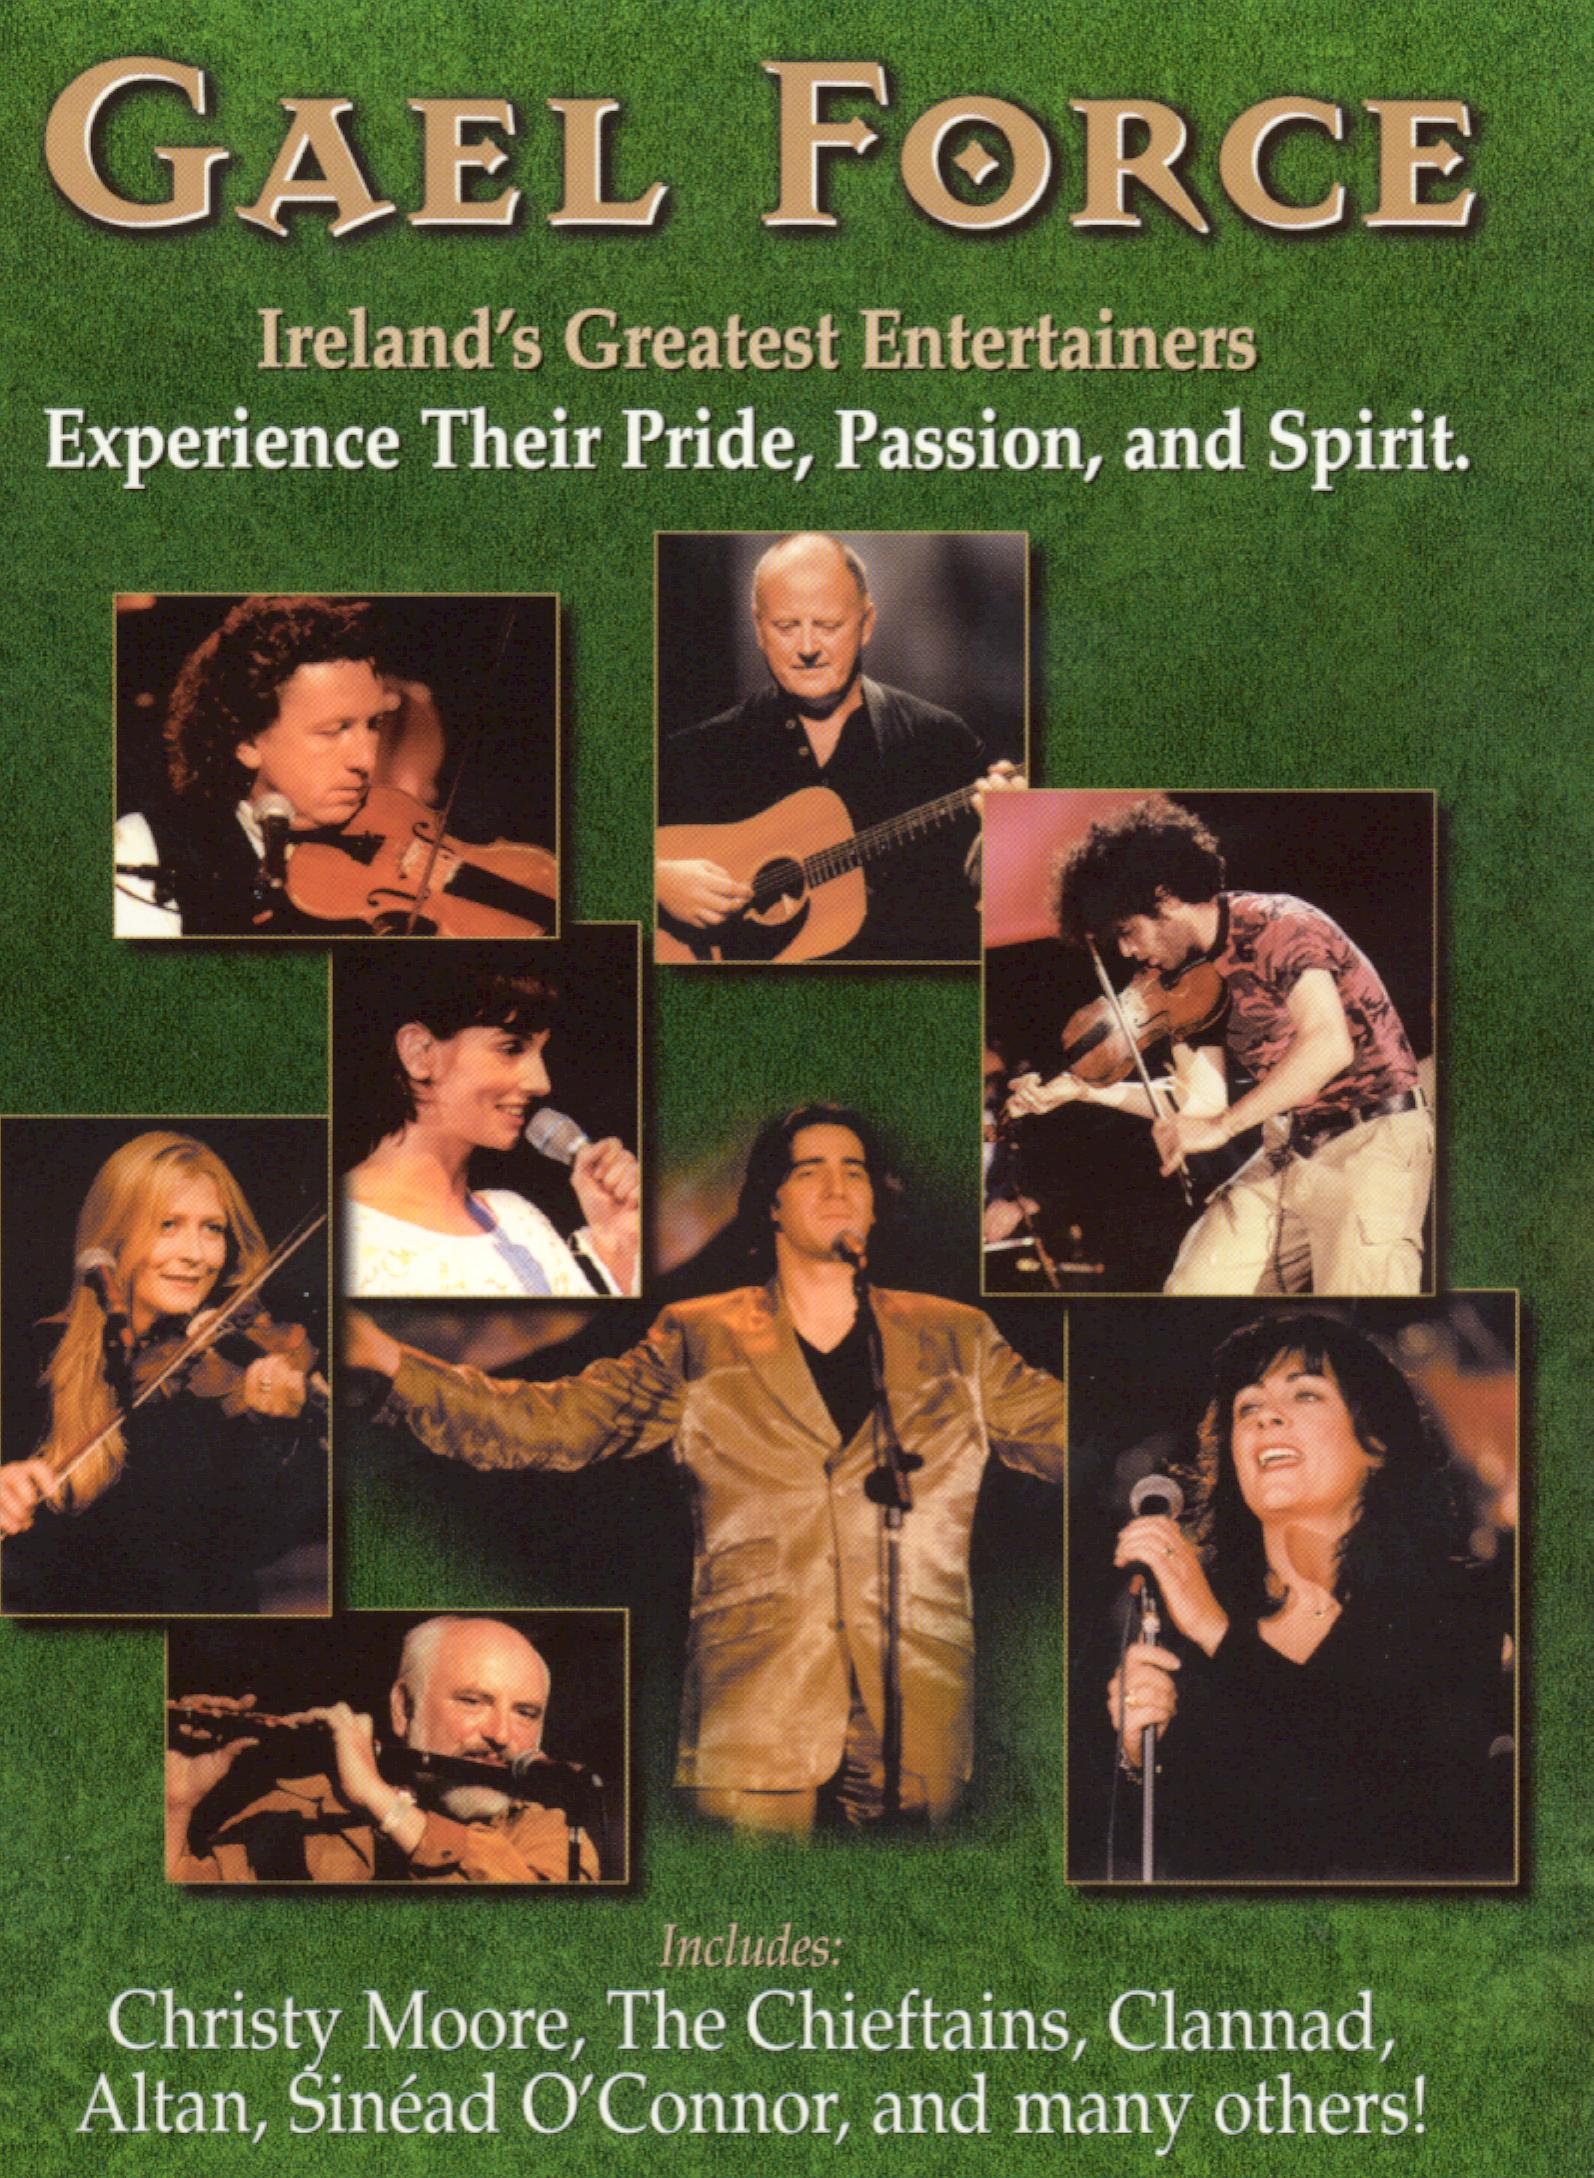 Live Concert of the Greatest Irish Artists Gaelforce